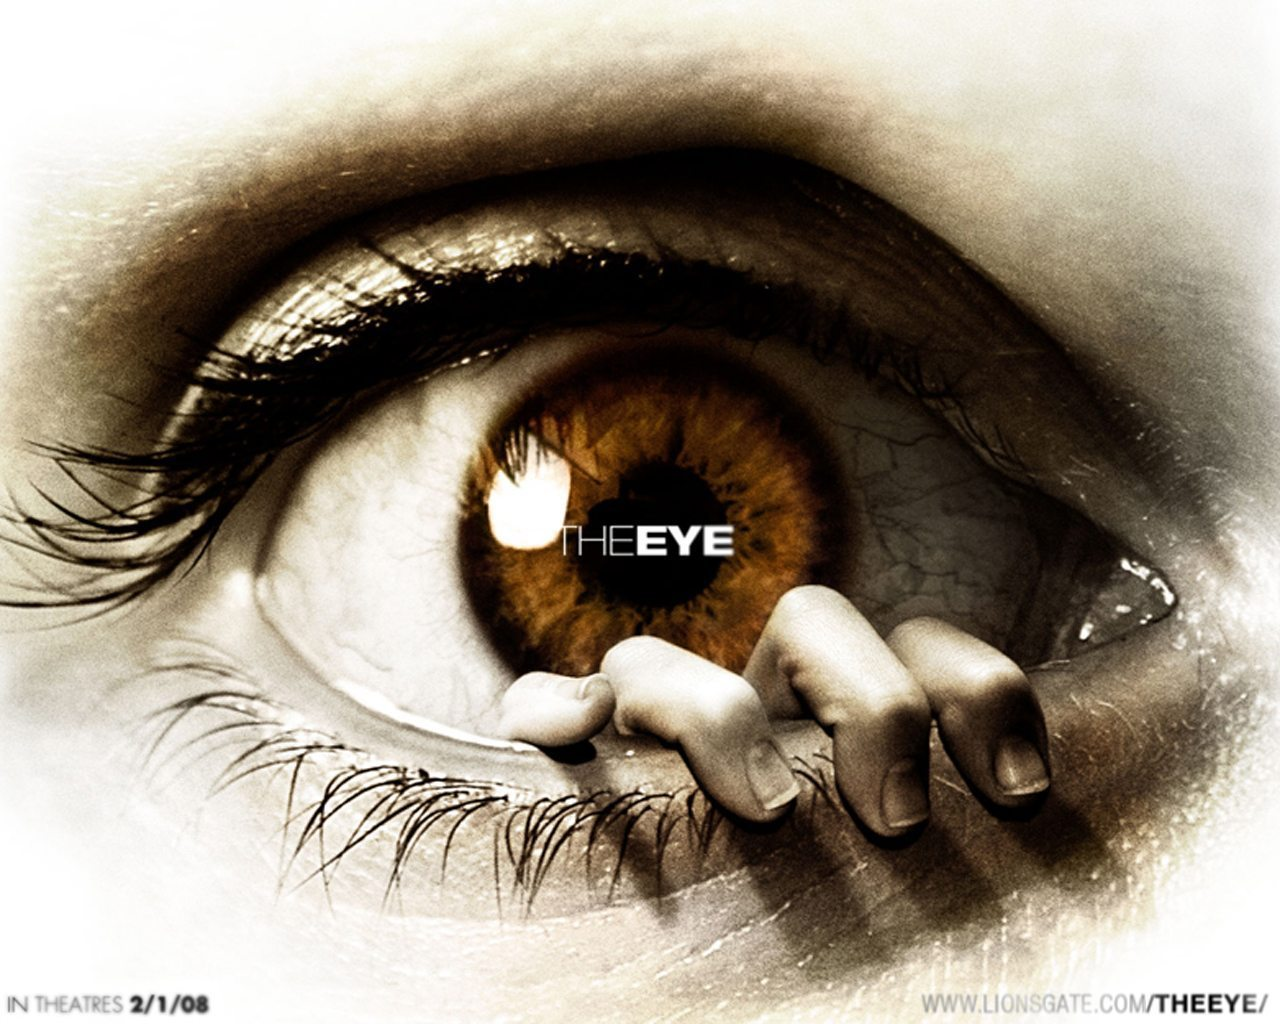 http://1.bp.blogspot.com/-2uCv6cwEiCk/TkFGCibDOqI/AAAAAAAACVE/uEjpq99ftkM/s1600/The-Eye-wallpapers-horror-movies-6396111-1280-1024.jpg